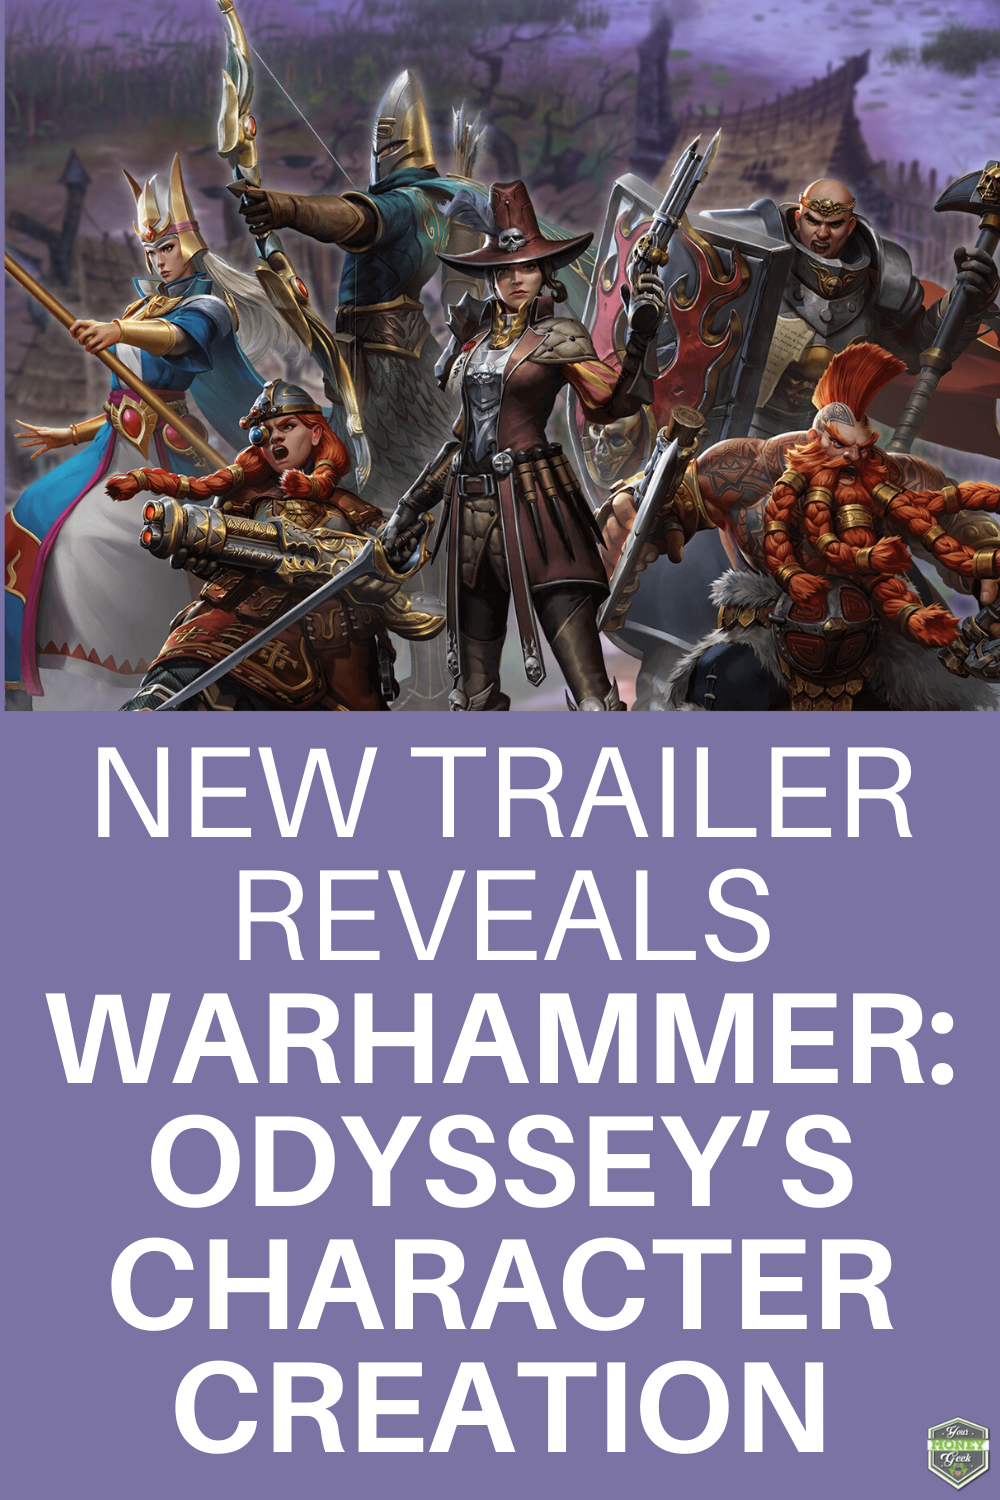 New Trailer Reveals Warhammer Odyssey's Character